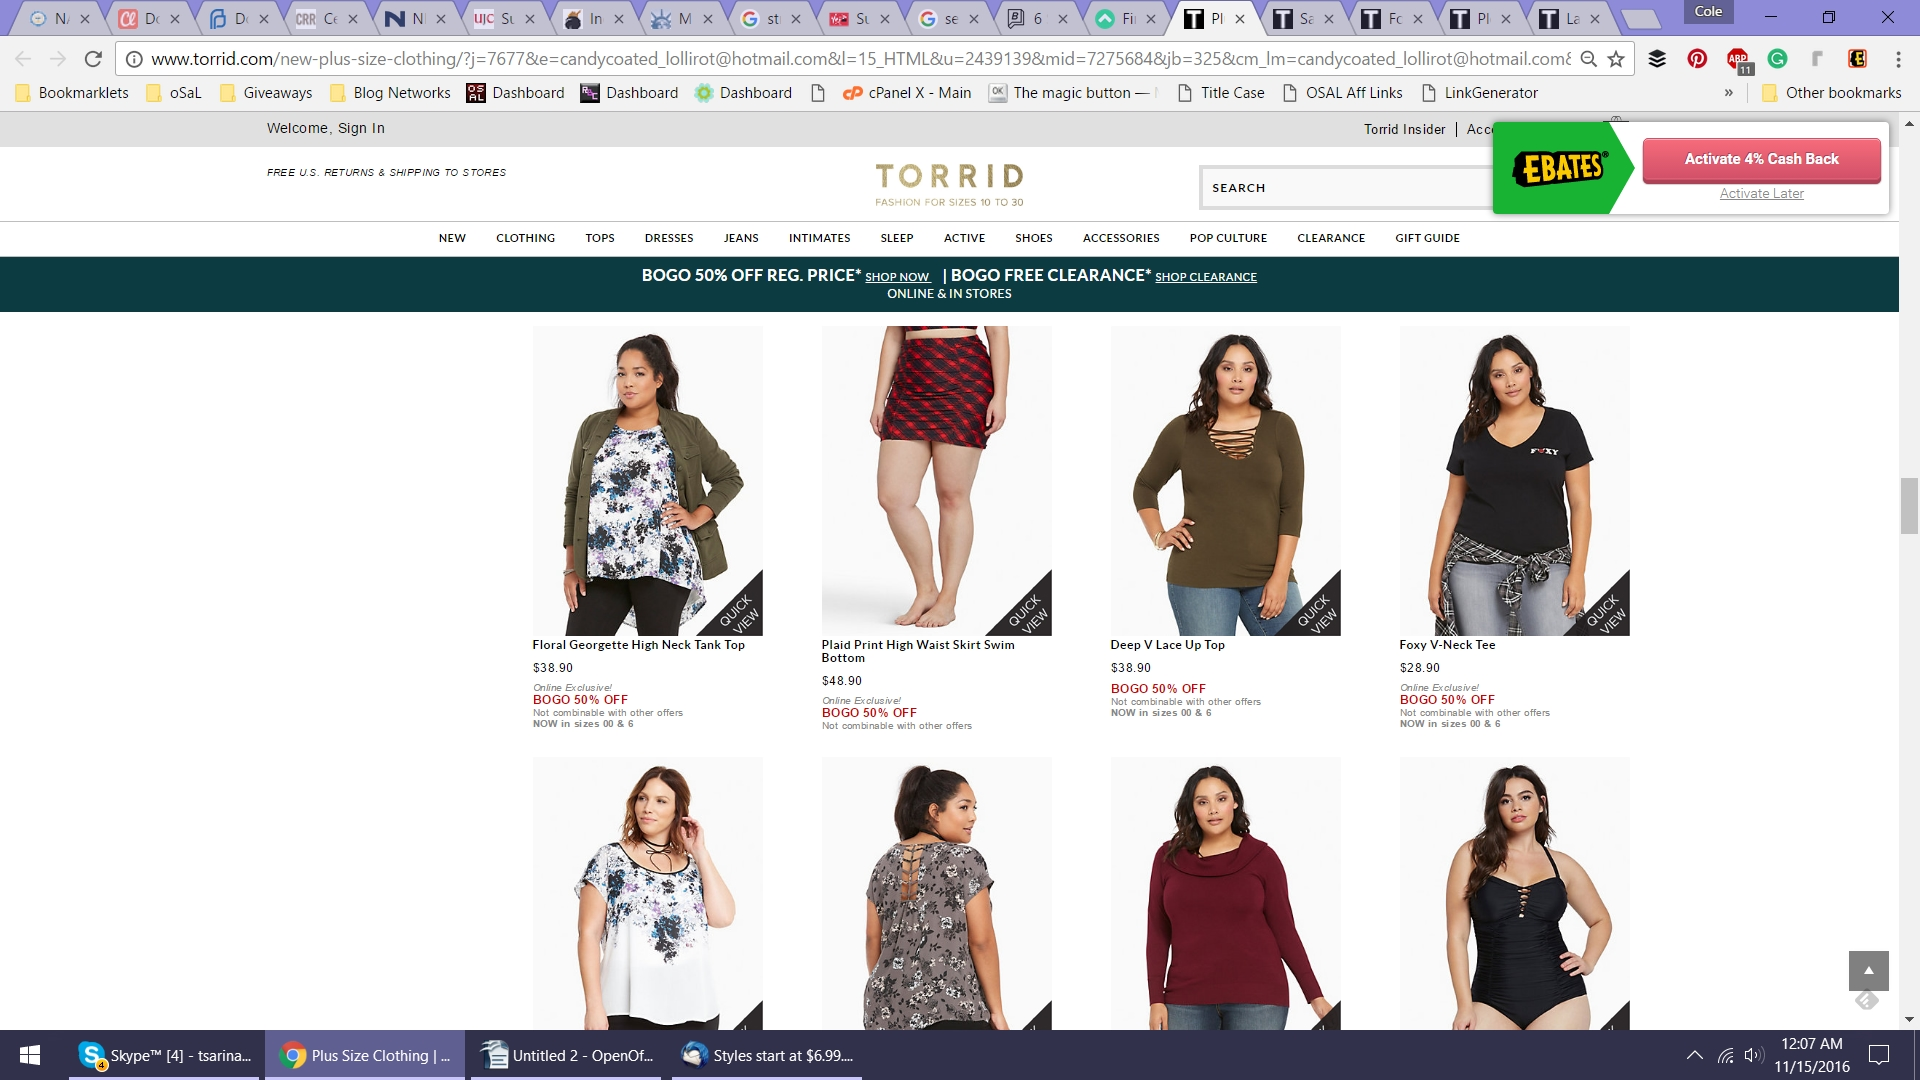 picture relating to Torrid Printable Coupons titled Torrid coupon codes 50 off : Resort promotions melbourne groupon